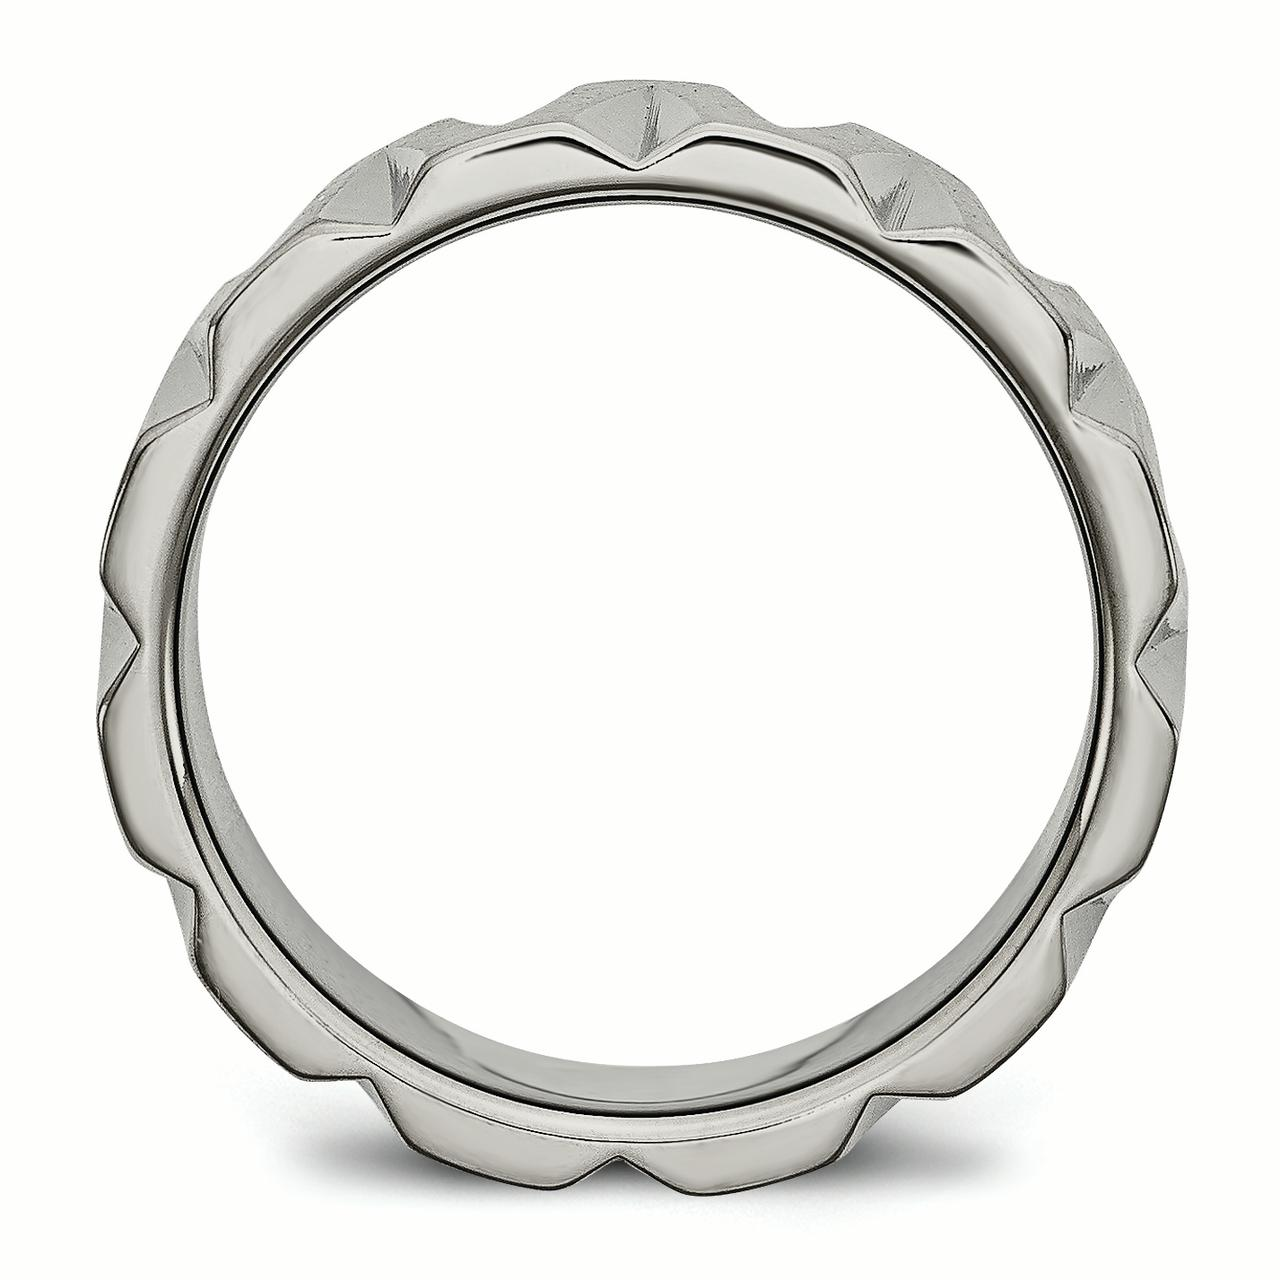 Titanium Notched 8mm Wedding Ring Band Size 7.00 Fancy Fashion Jewelry Gifts For Women For Her - image 4 de 6